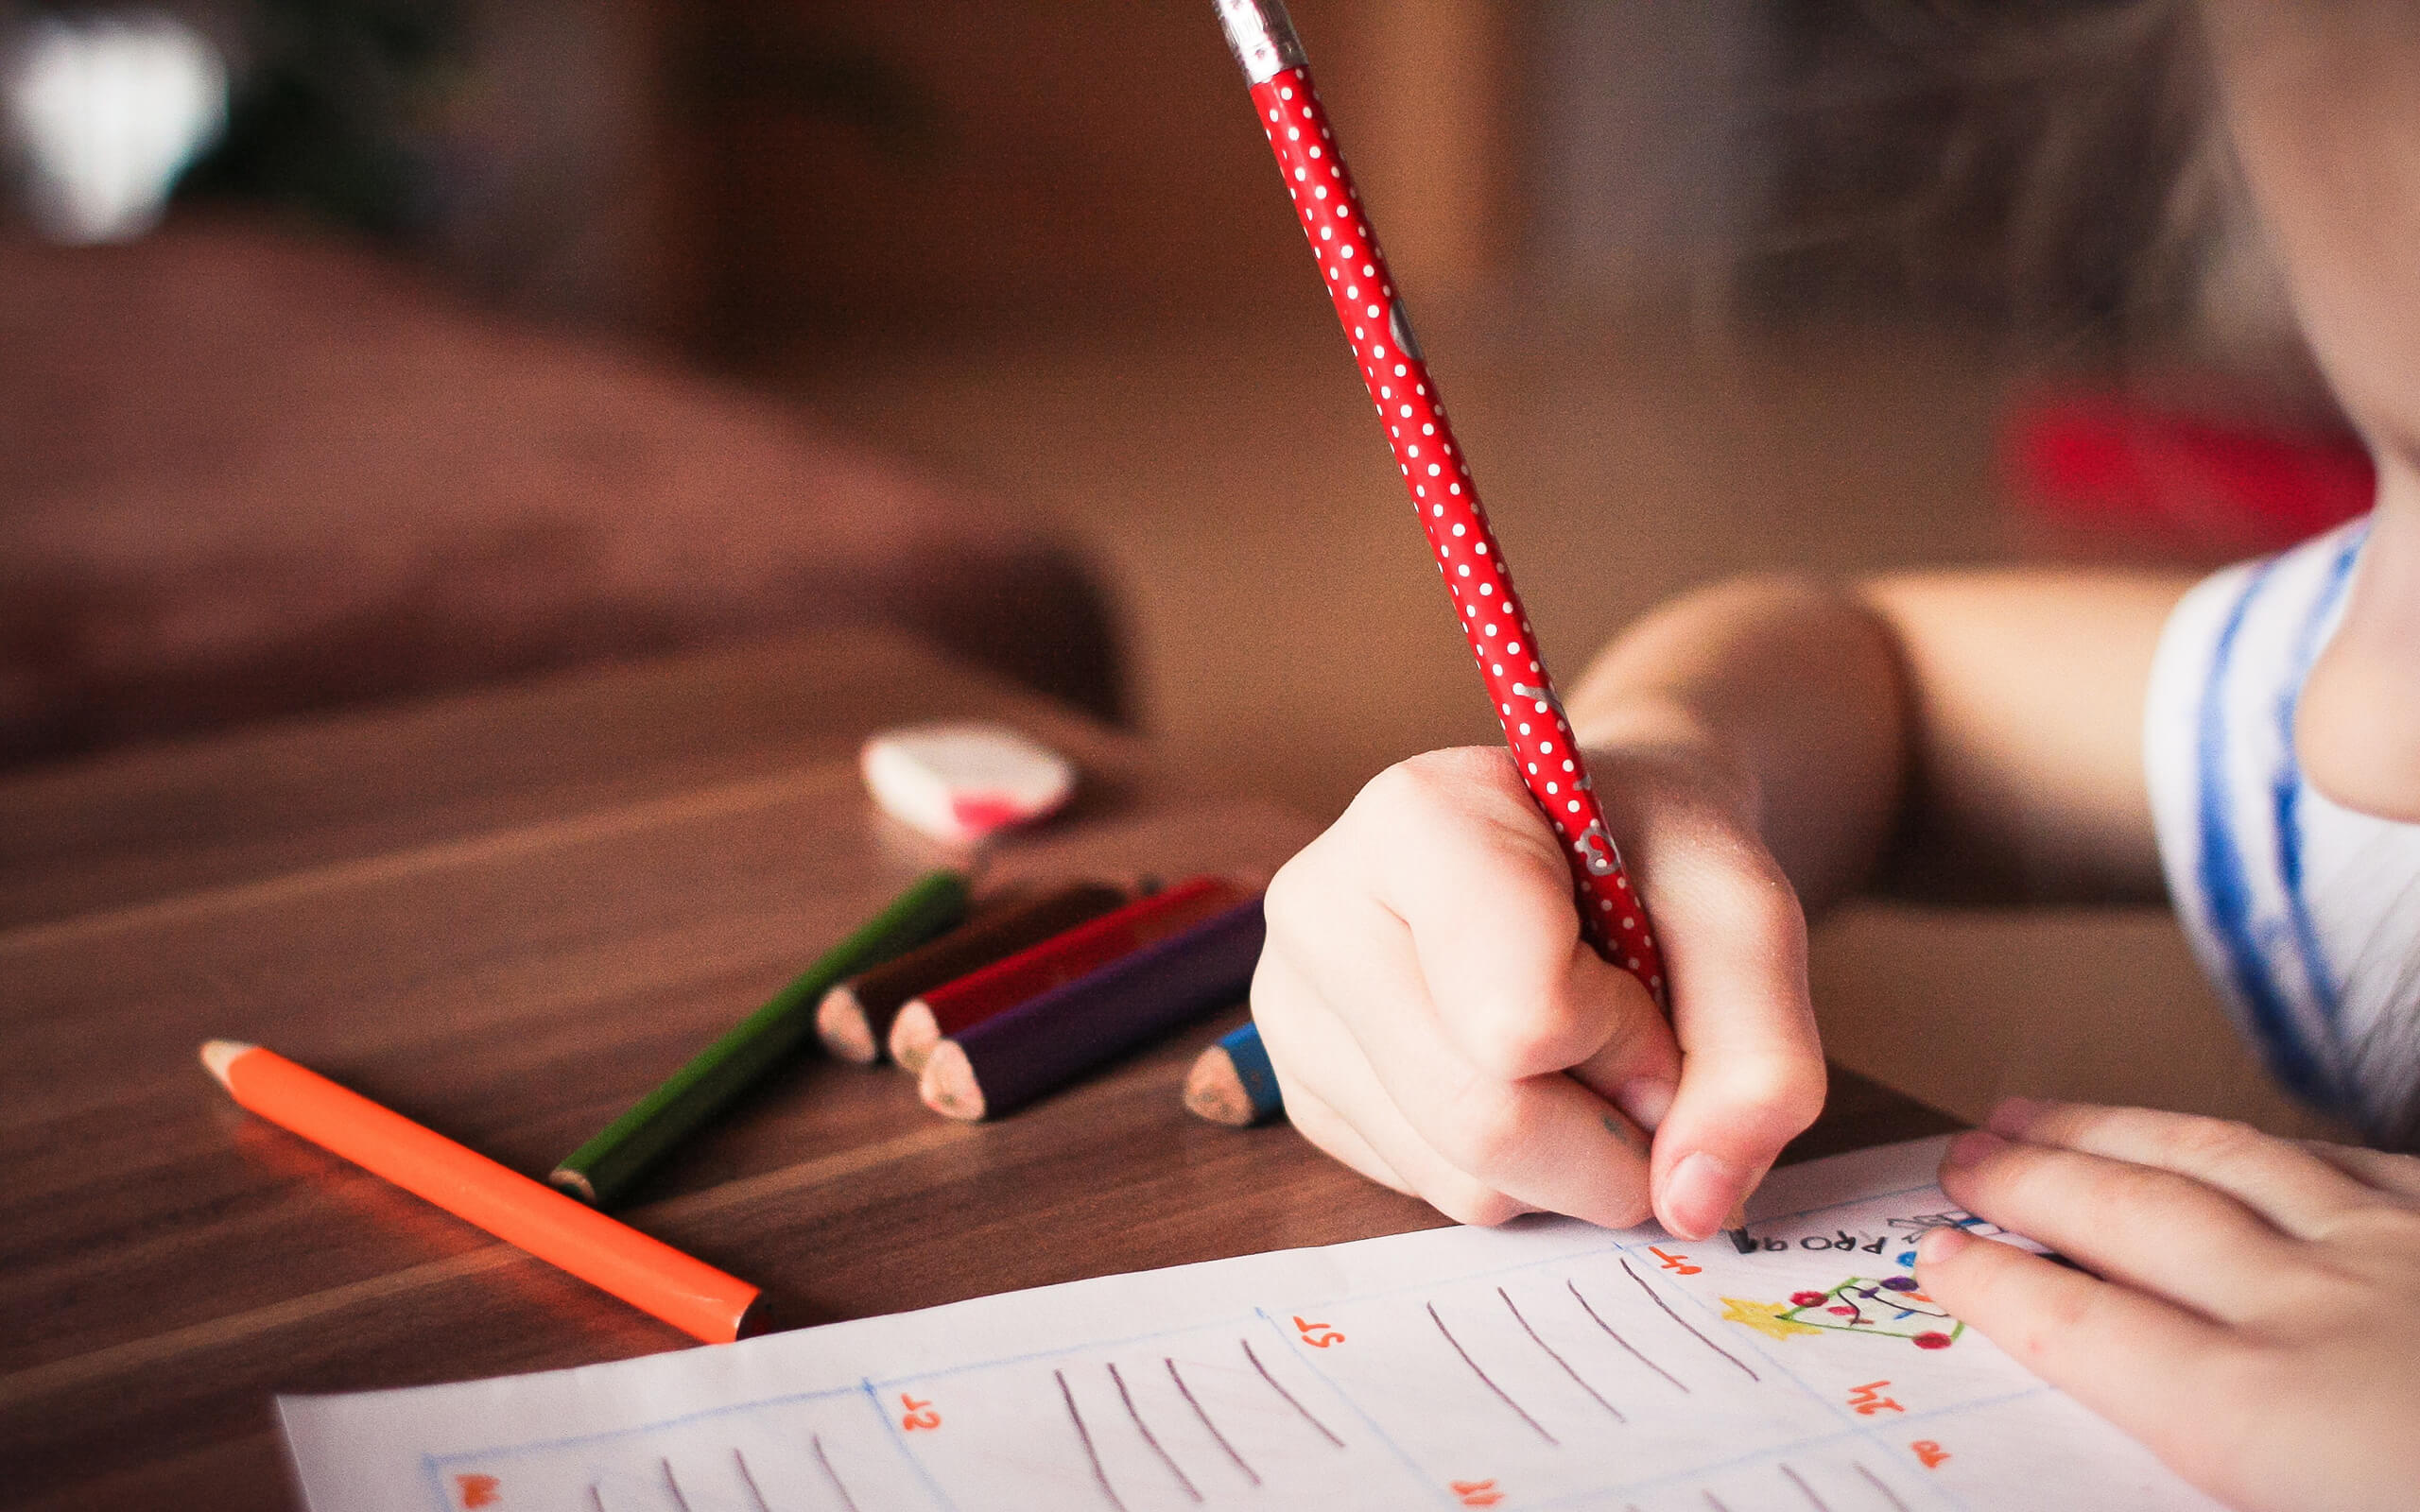 a small child using a pencil